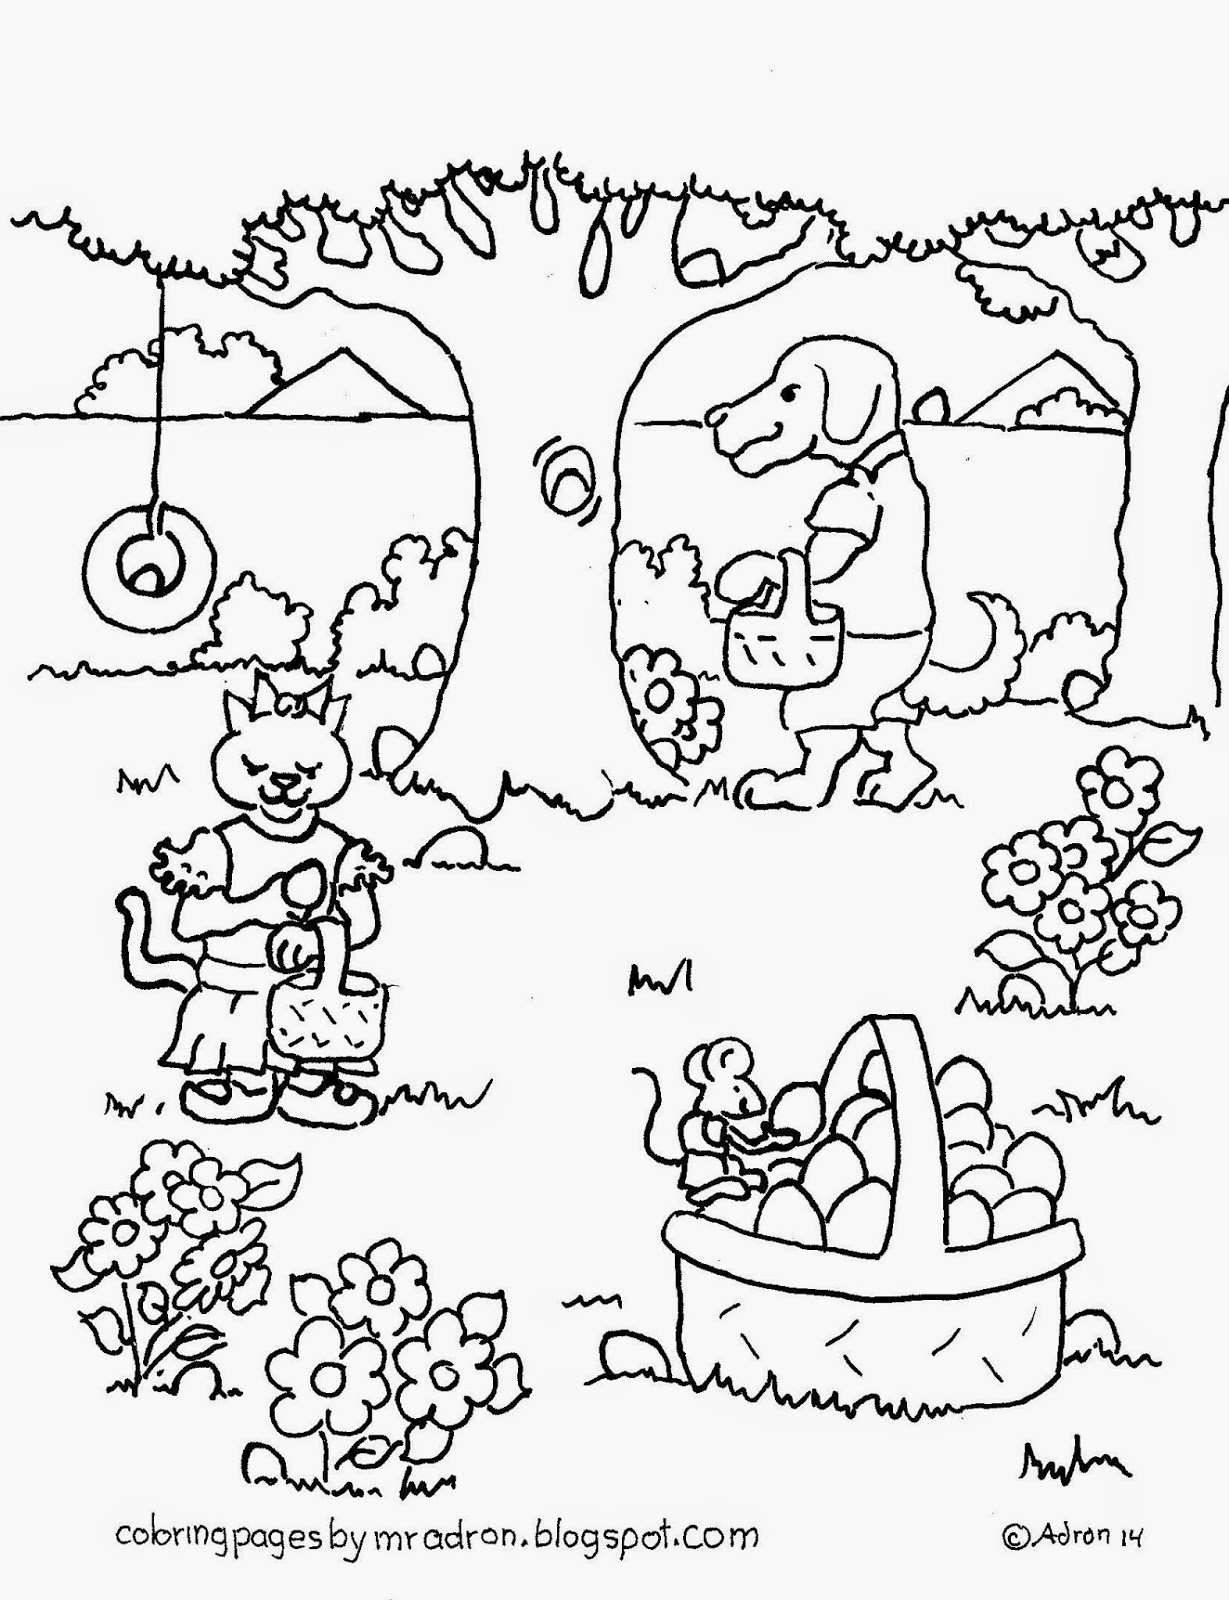 Coloring Pages For Kids By Mr Adron Animal S Easter Egg